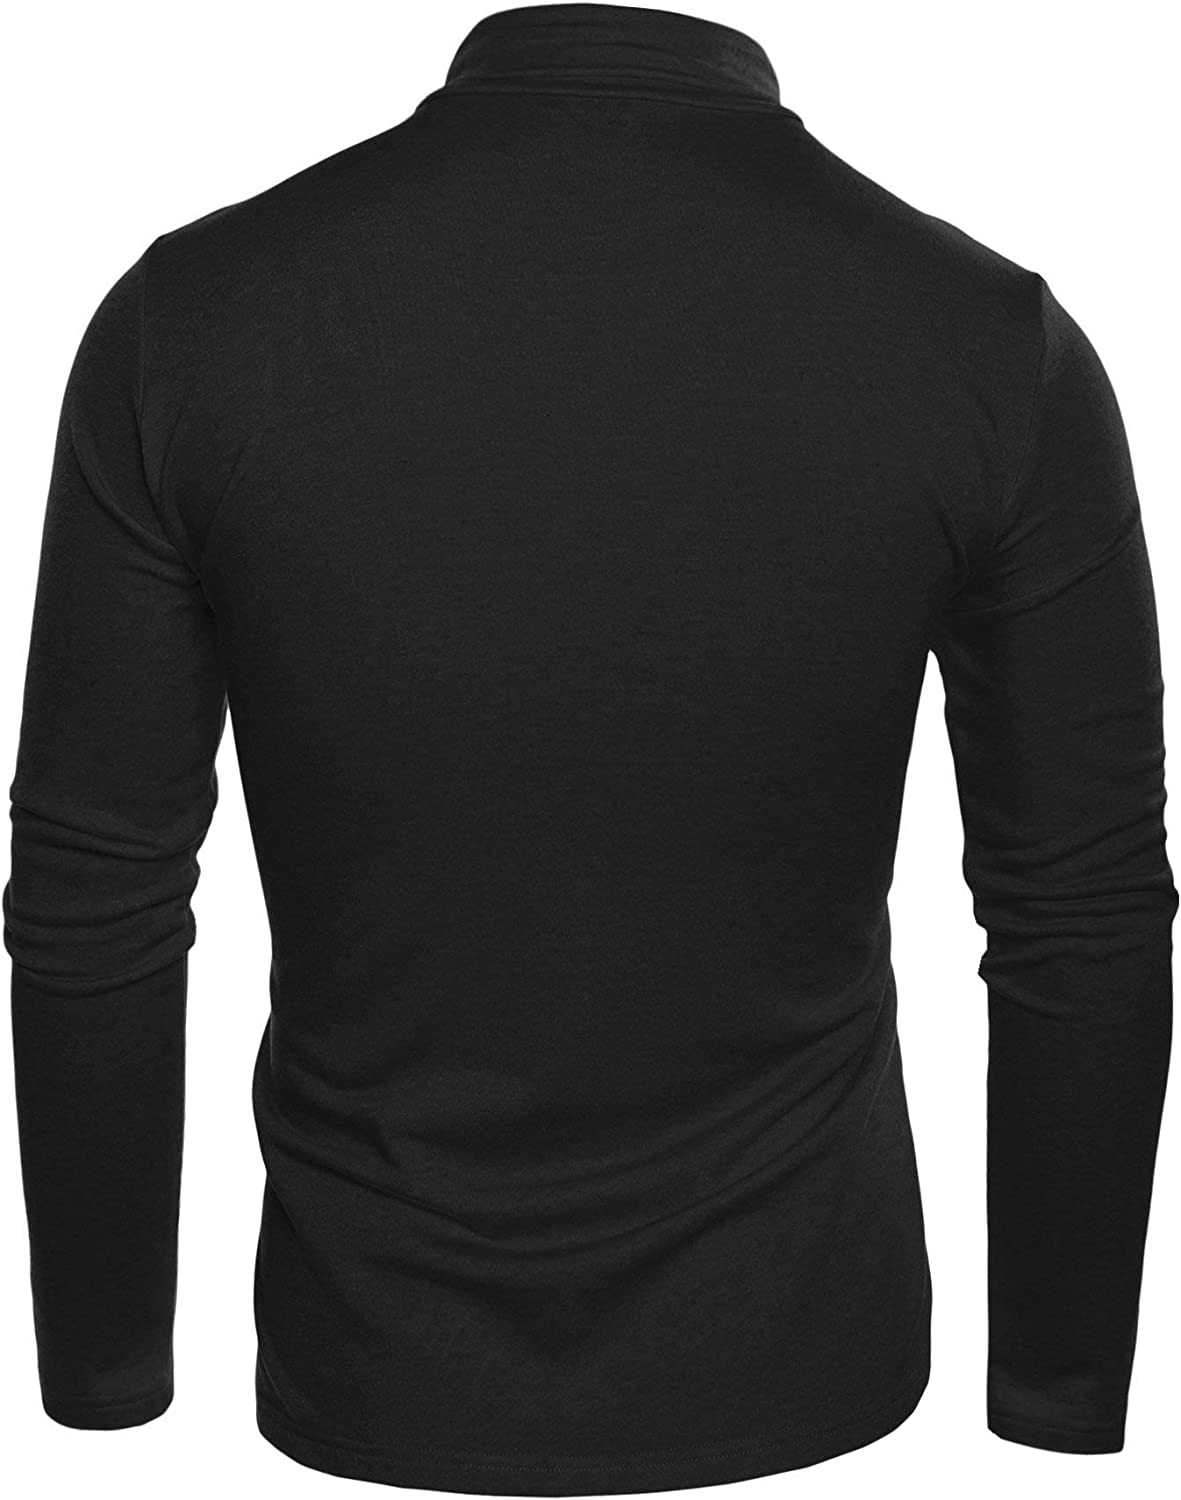 Mens Casual Slim Fit Soft Turtleneck Long Sleeve Pullover Thermal T-Shirt Basic Designed